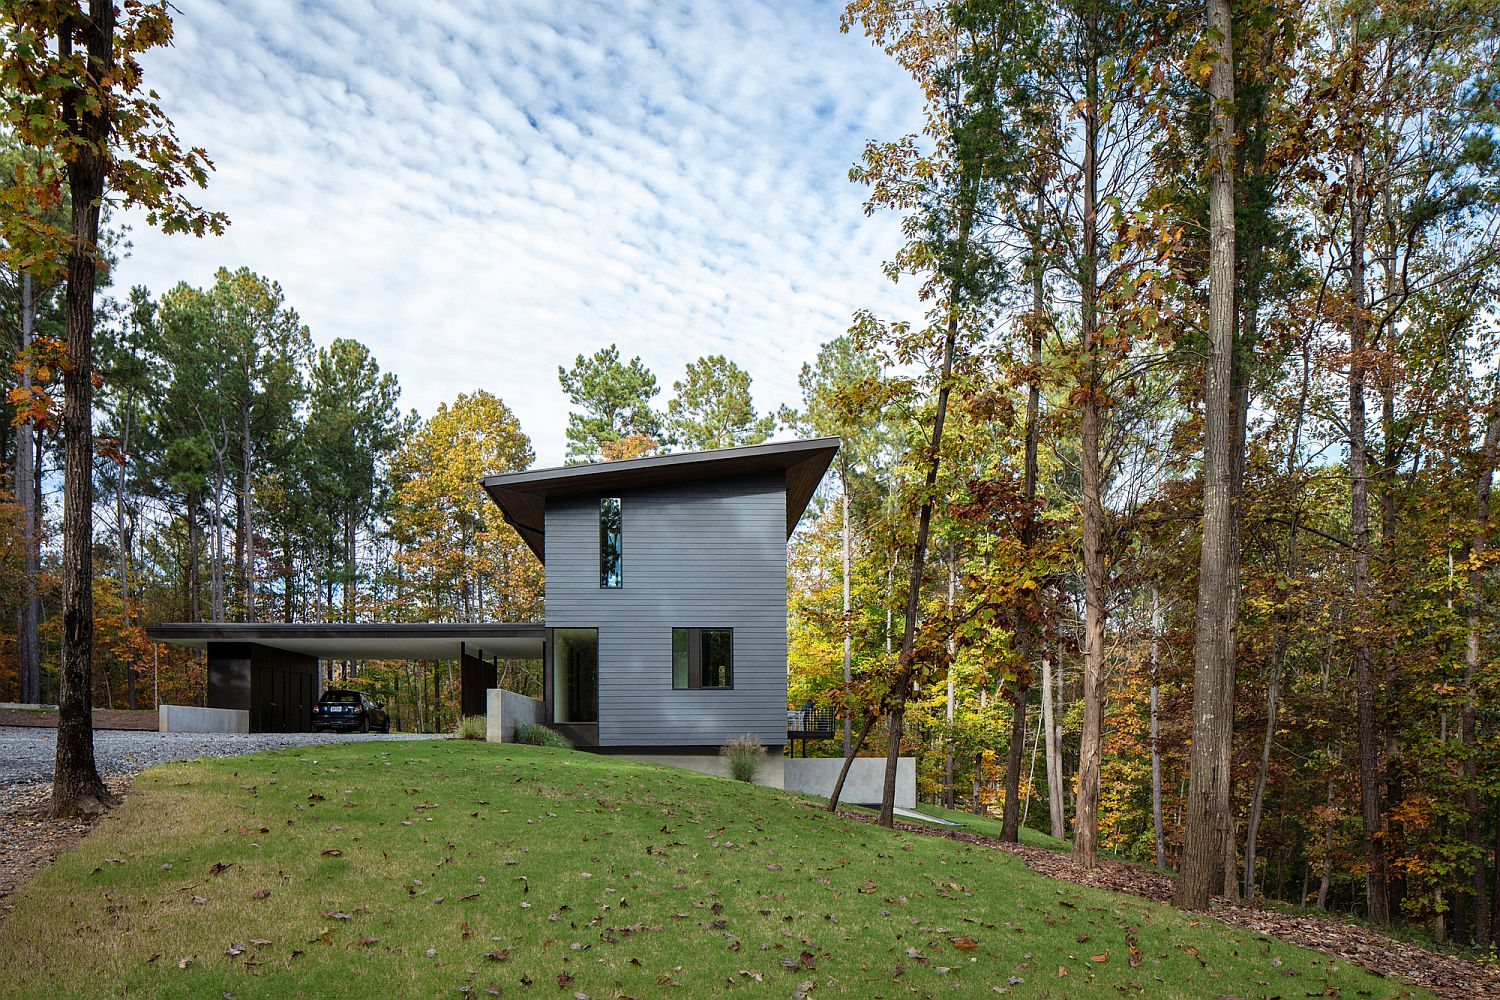 Gray-and-white-exterior-of-the-house-gives-it-a-modern-appeal